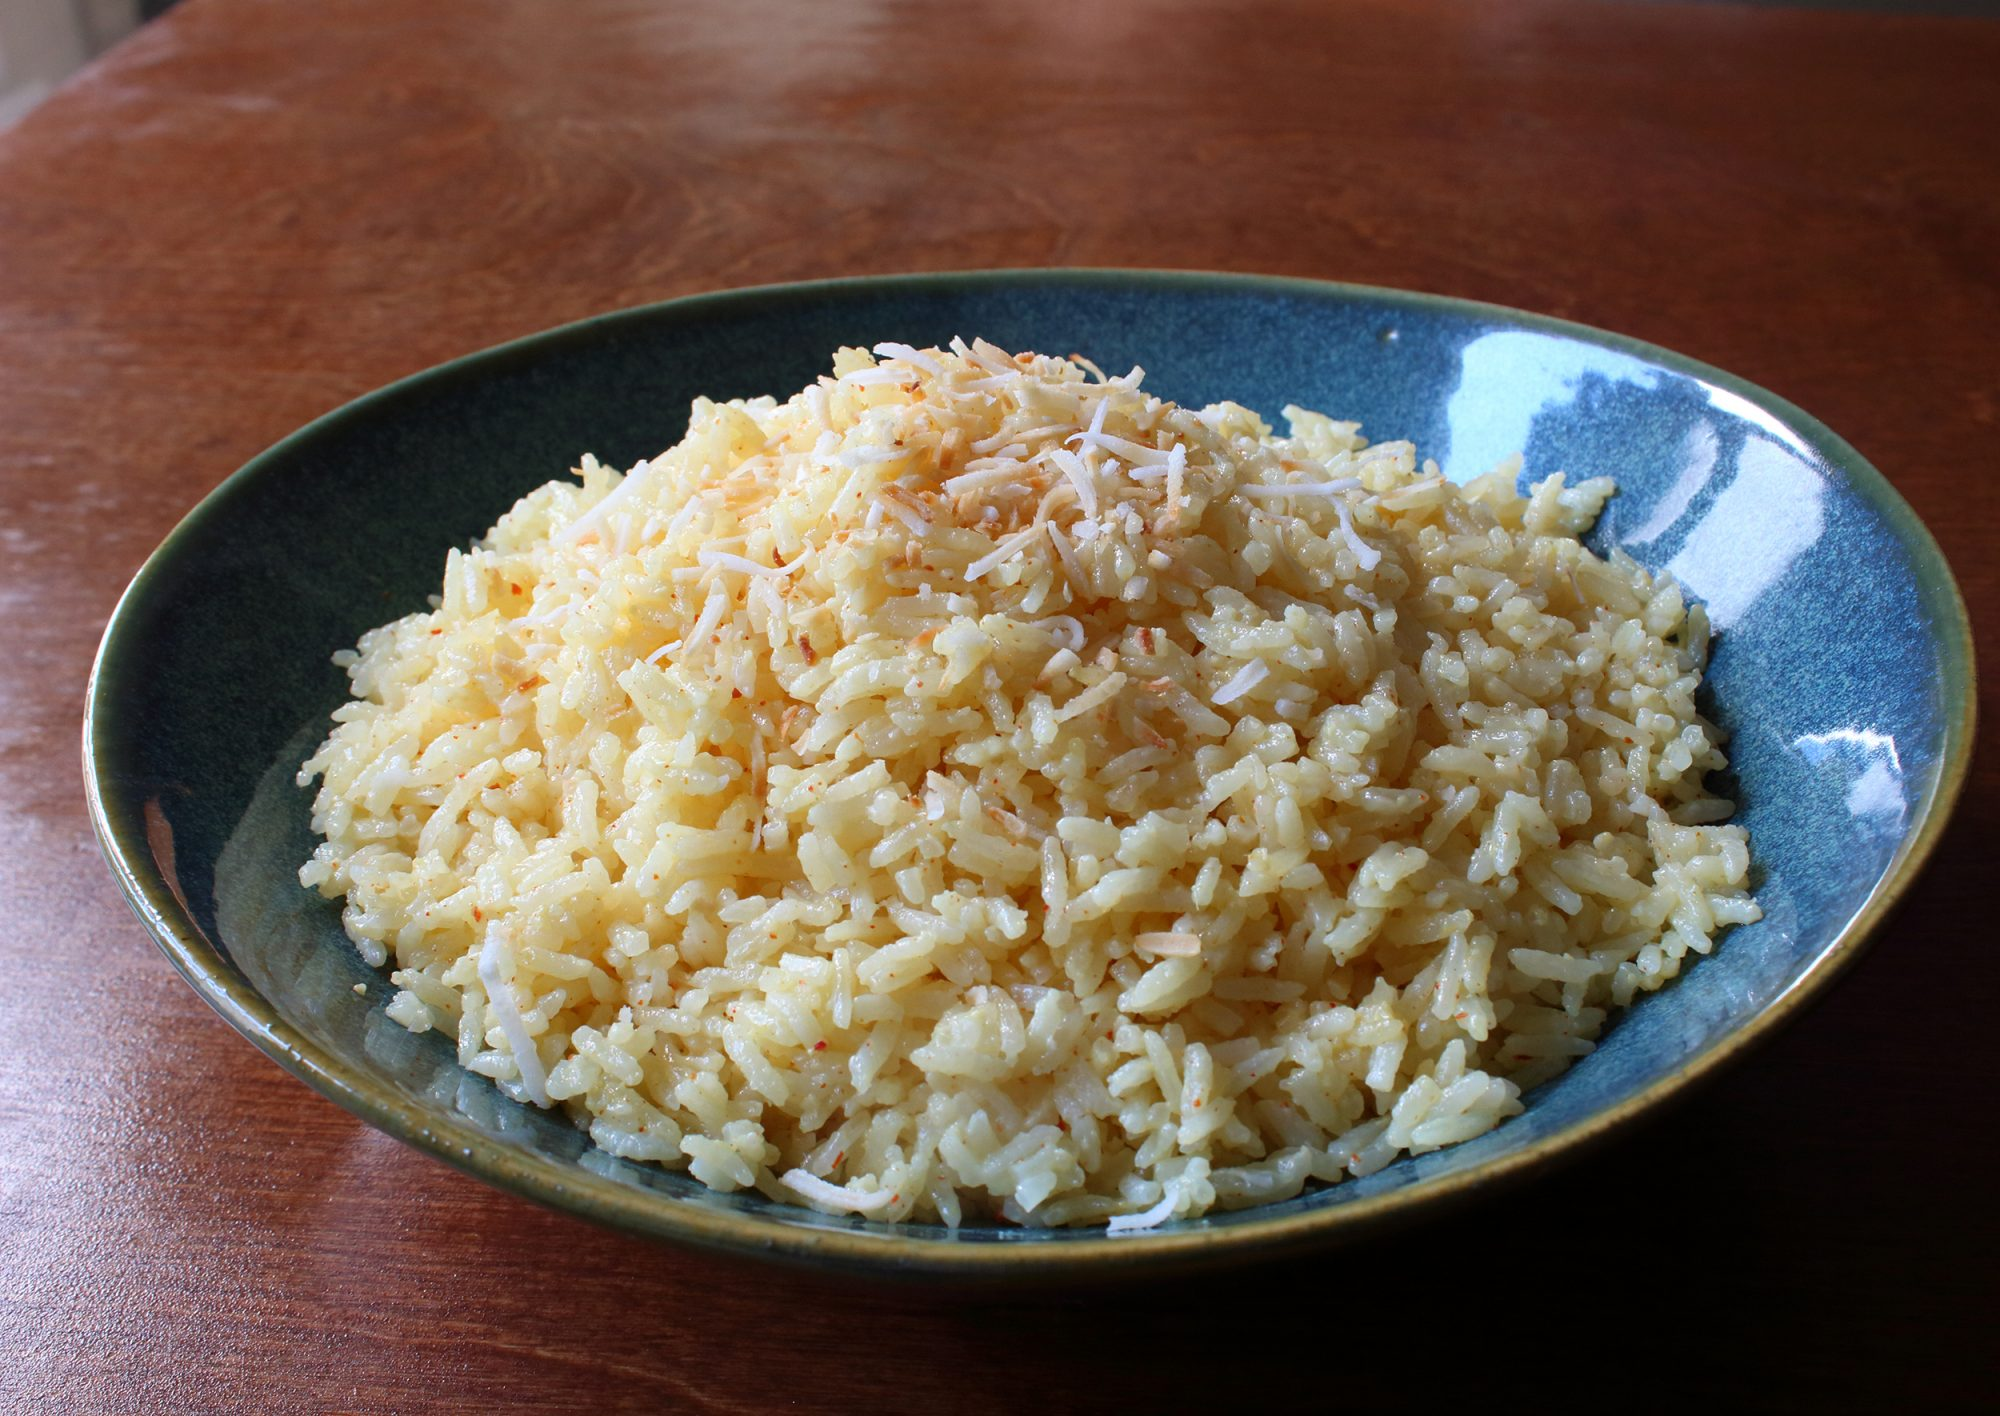 """""""I love coconut rice, especially as a side for spicy grilled meats but when I order it out, it's usually too sweet for my tastes,"""" says recipe creator Chef John. """"I decided to create a more savory version at home. There are lots of things you can add, like herbs, fresh vegetables, and/or sliced spring onions."""""""